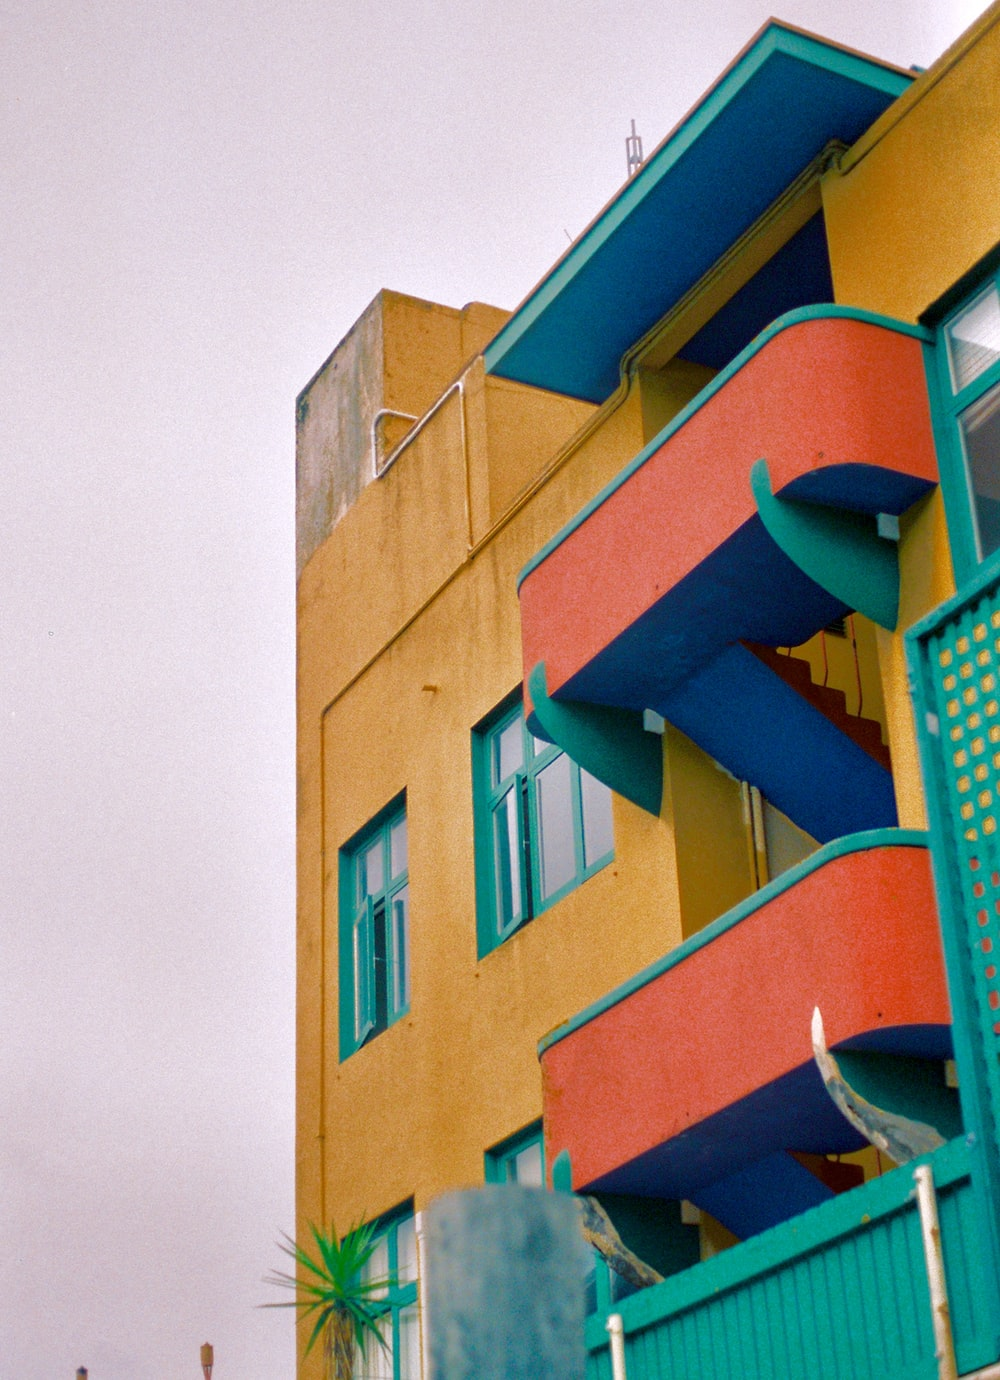 orange, blue, and yellow 4-storey building